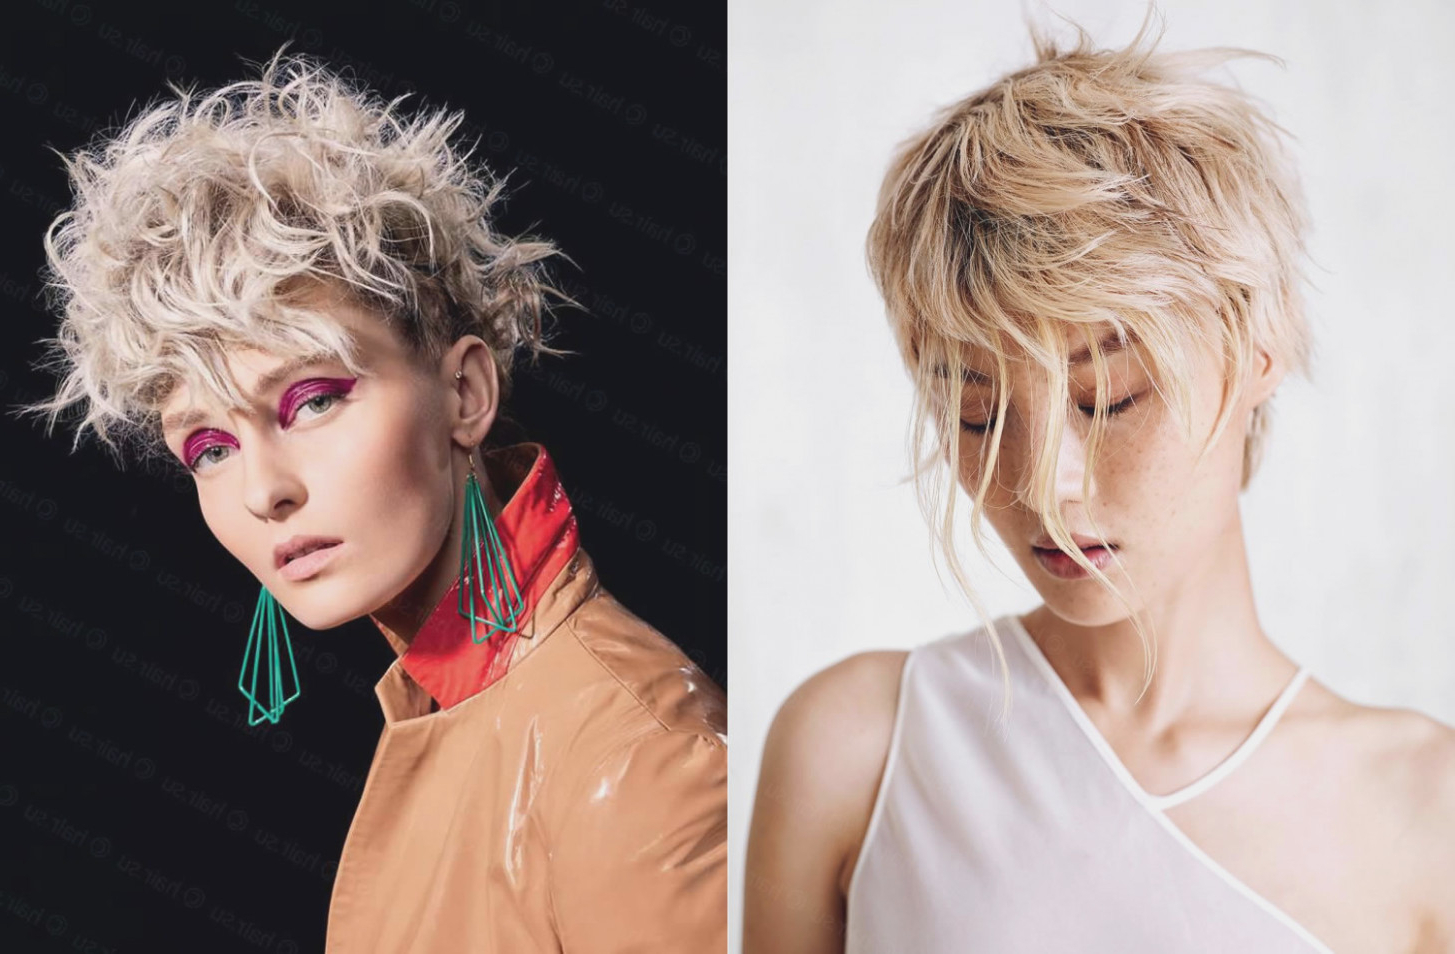 Messy Short Hairstyles For 44 44 – Hairstyles – Messy Hairstyles For Messy Short Haircuts For Women (View 24 of 25)